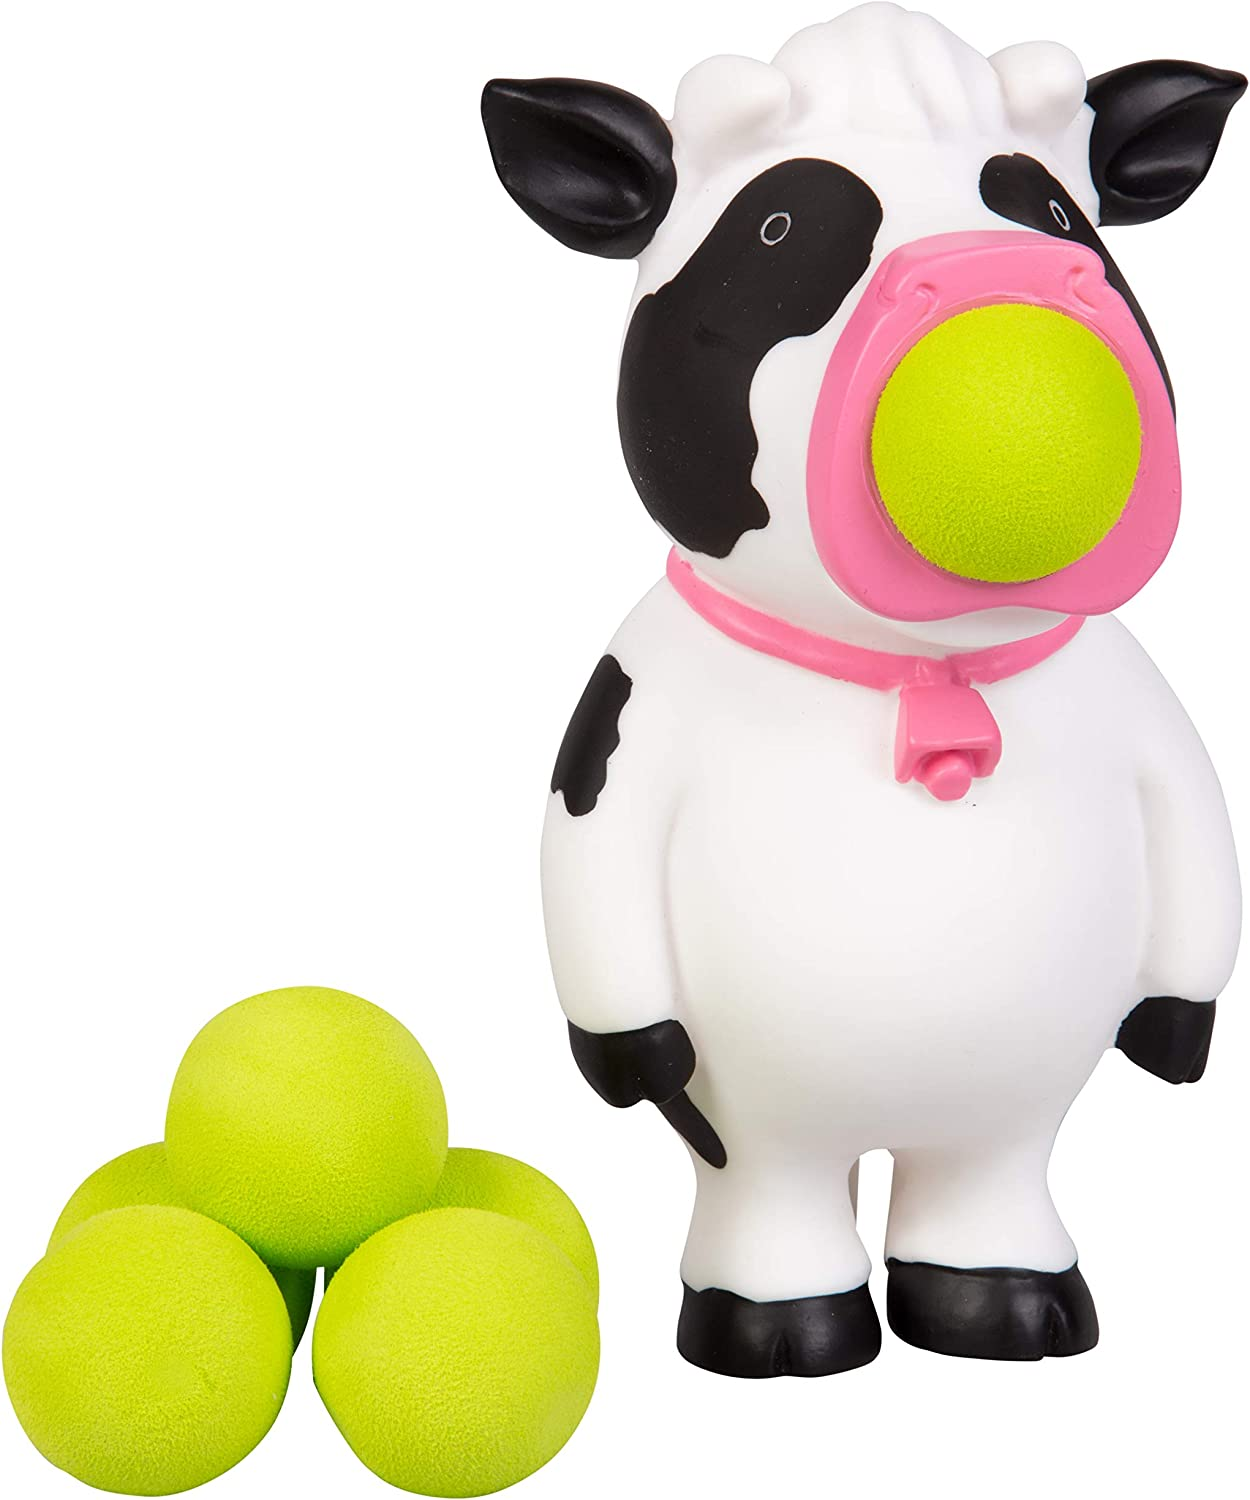 Hog Wild Cow Popper Toy - Shoot Foam Balls Up to 20 Feet - 6 Balls Included - Age 4+